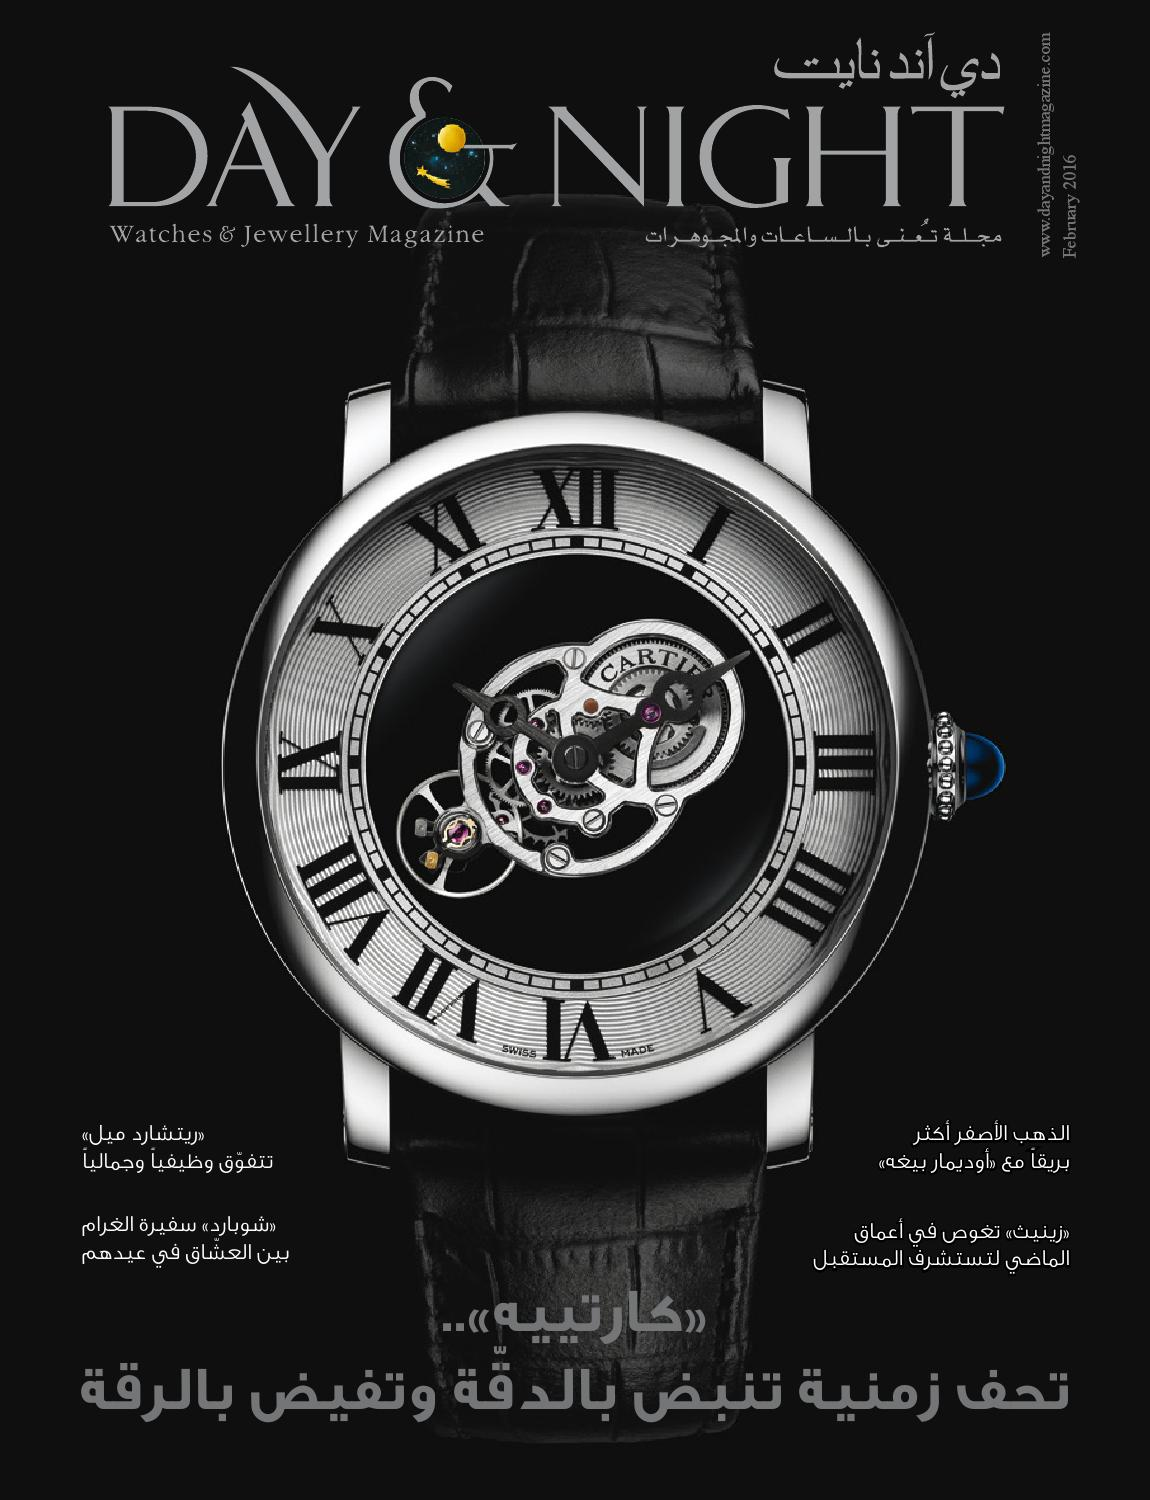 669d10715 Daymagazine by Day mag - issuu